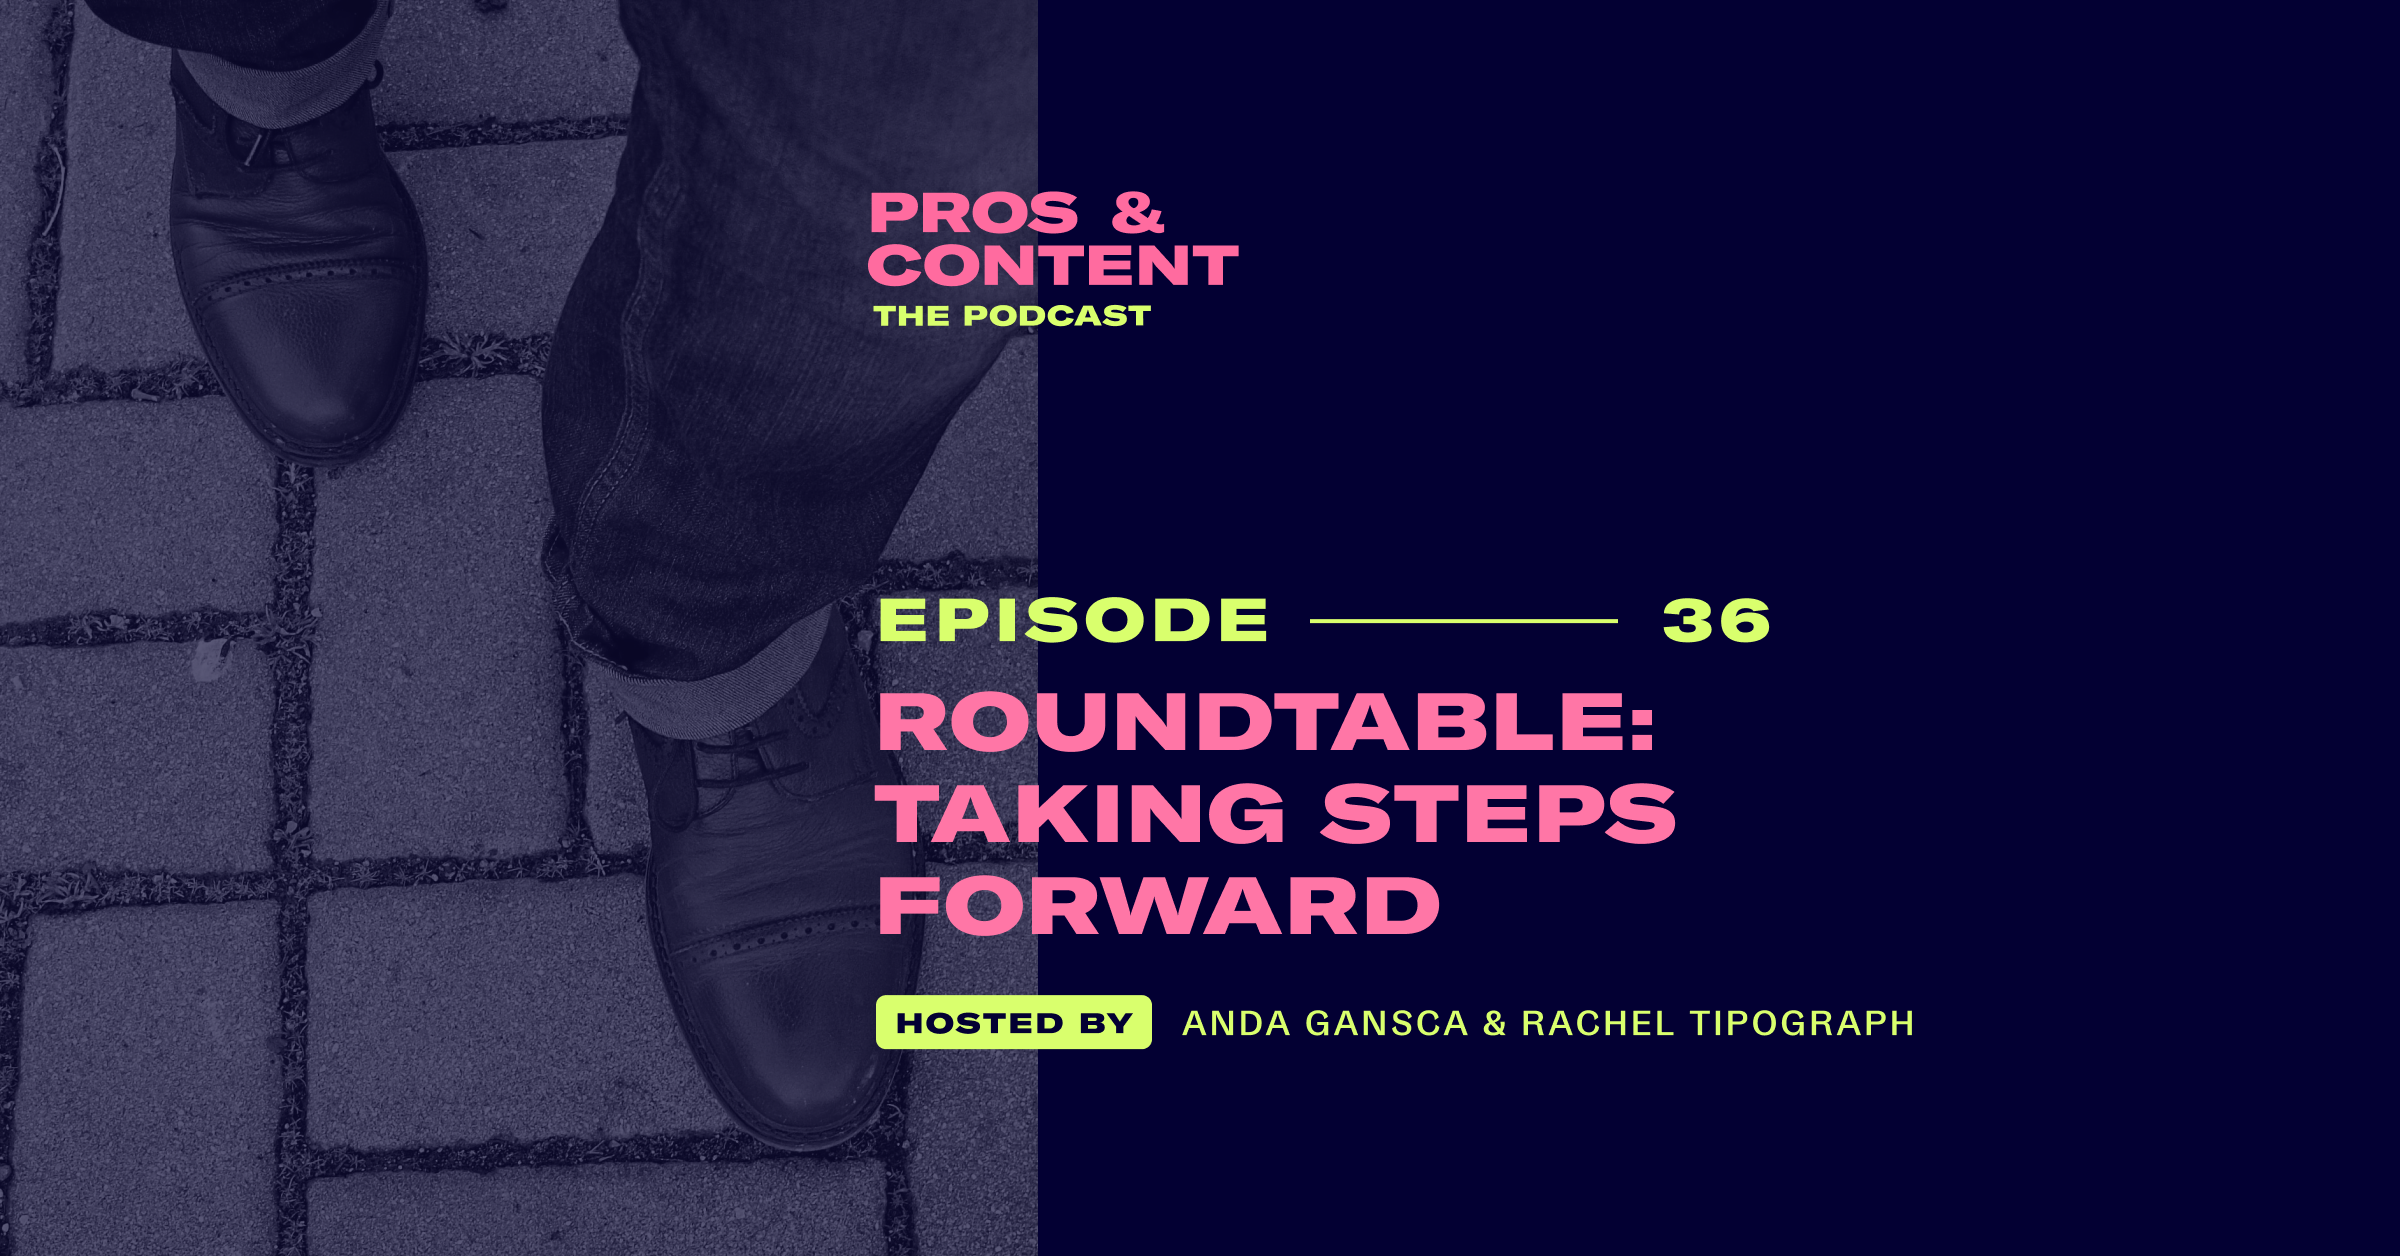 Pros & Content Podcast: Roundtable - Taking Steps Forward